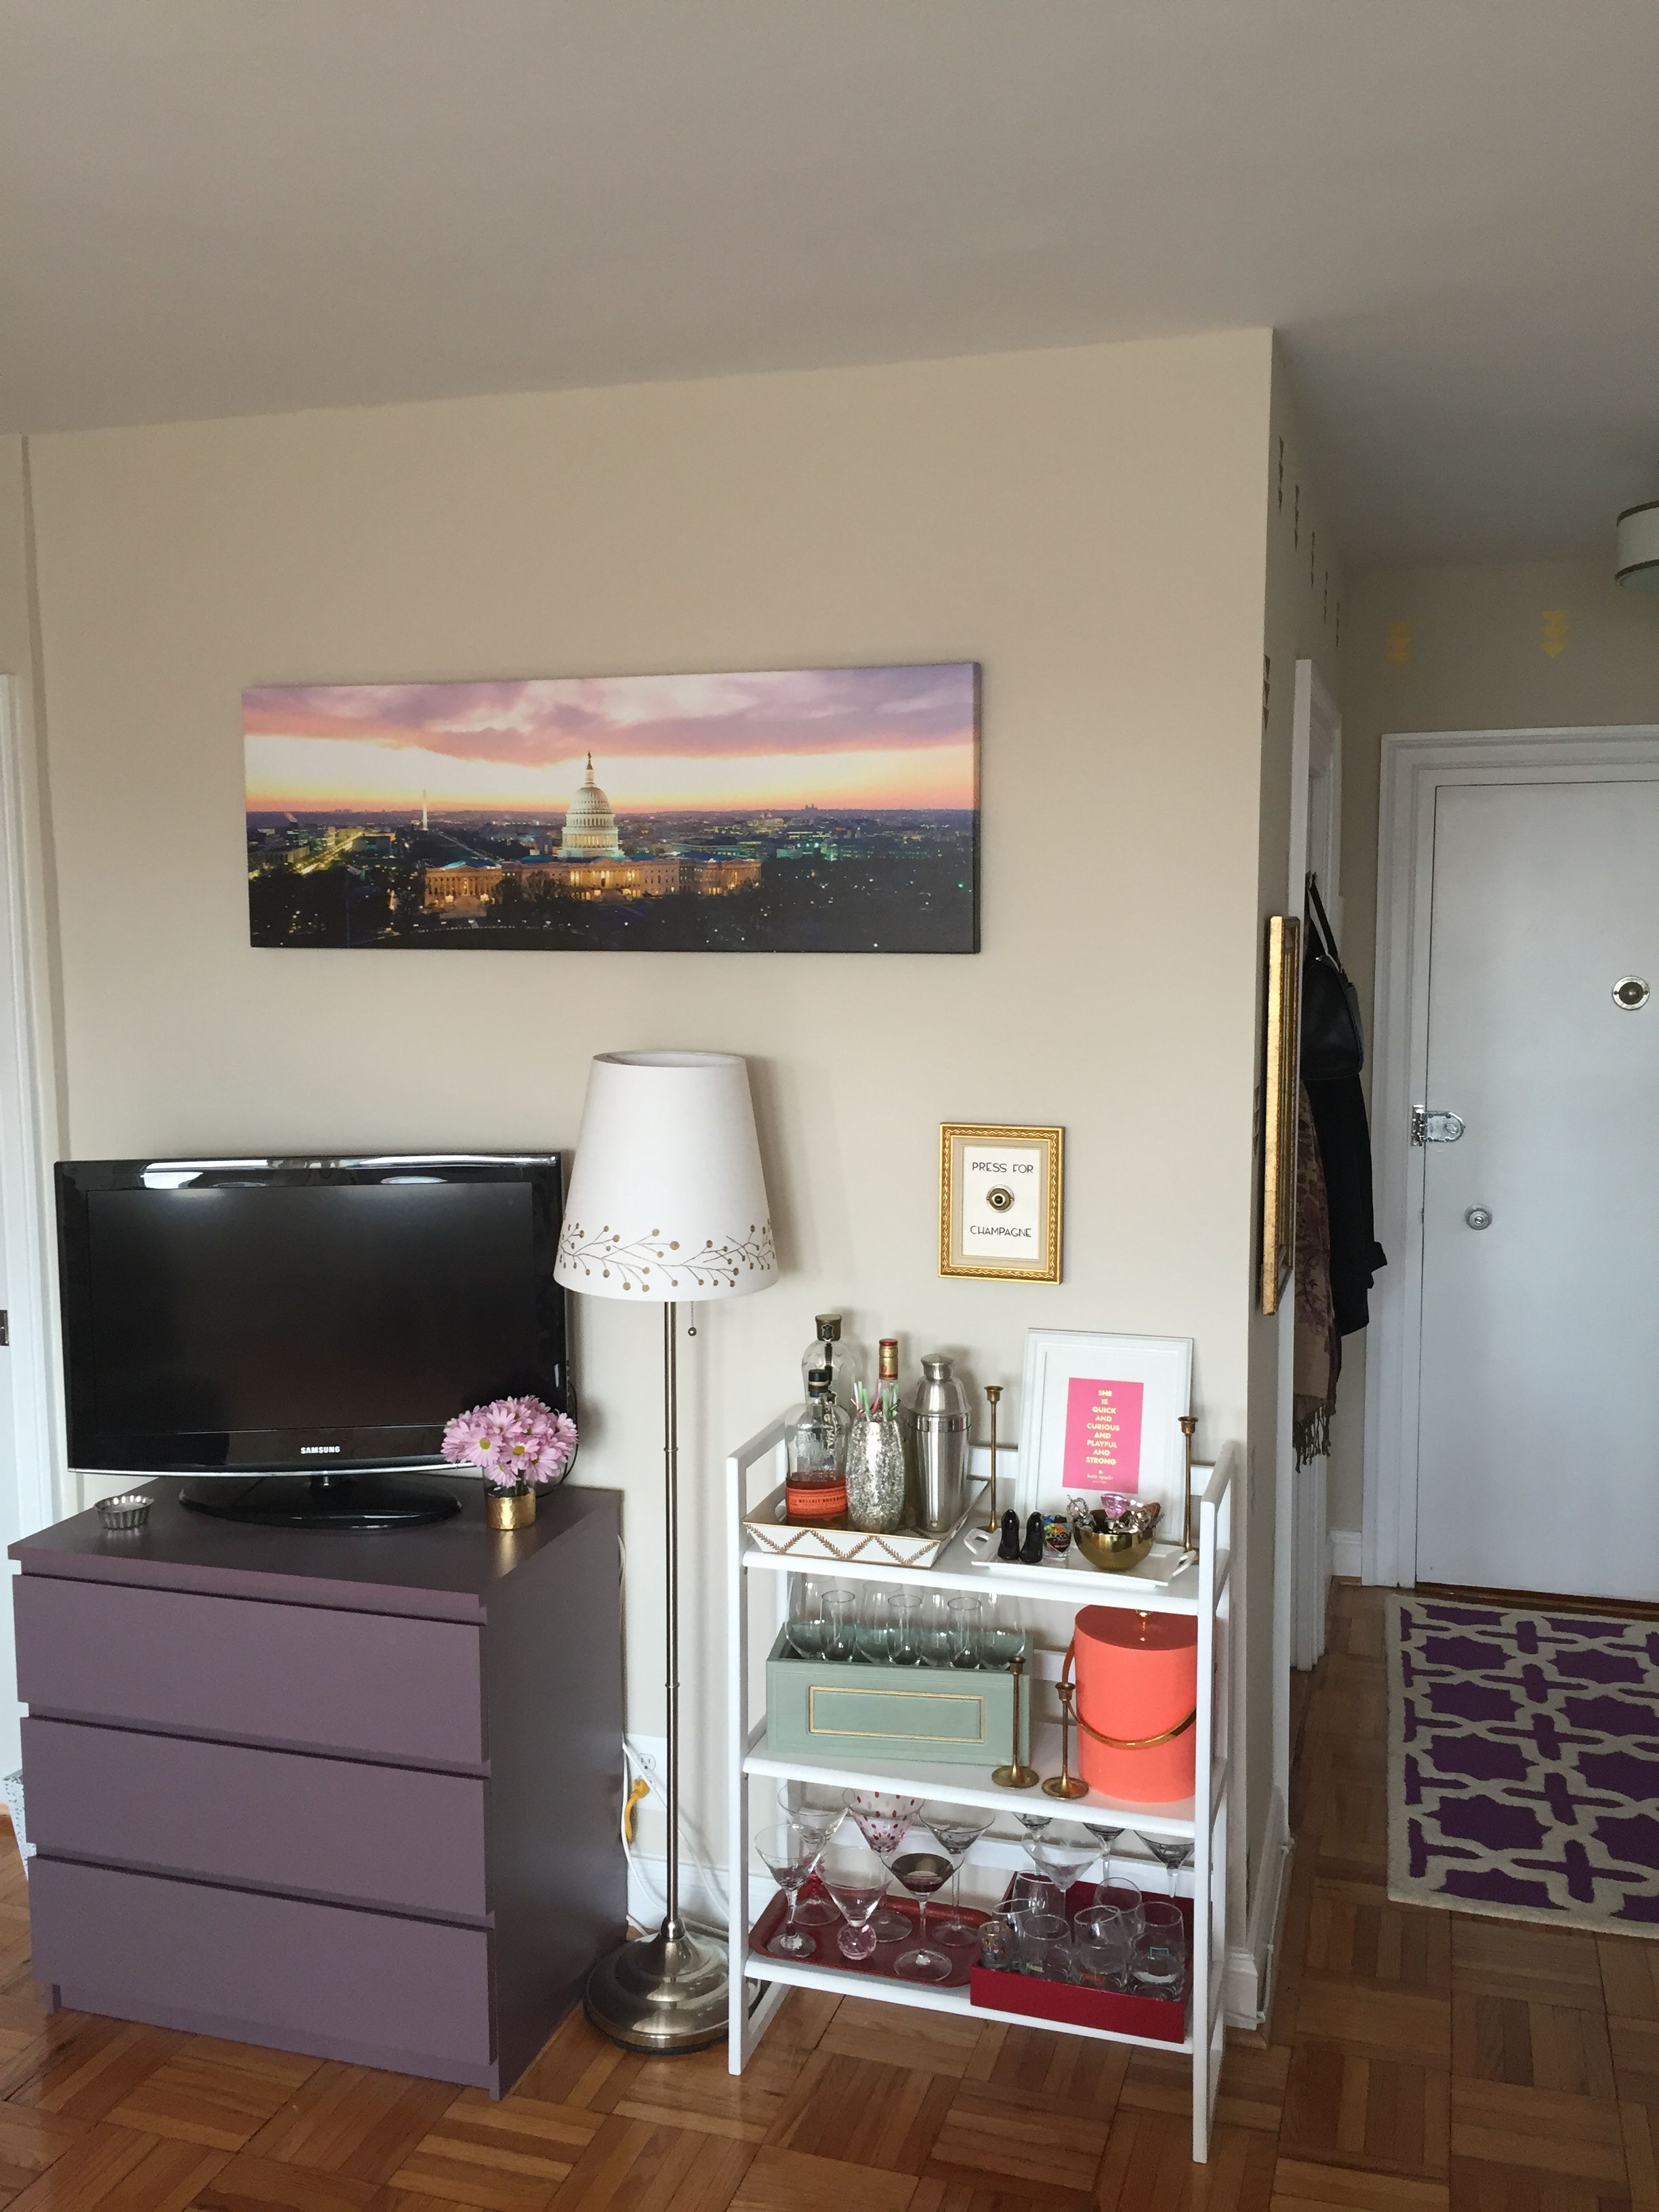 ask studio style blog volume iv how to deal with carpet in a rental apartment